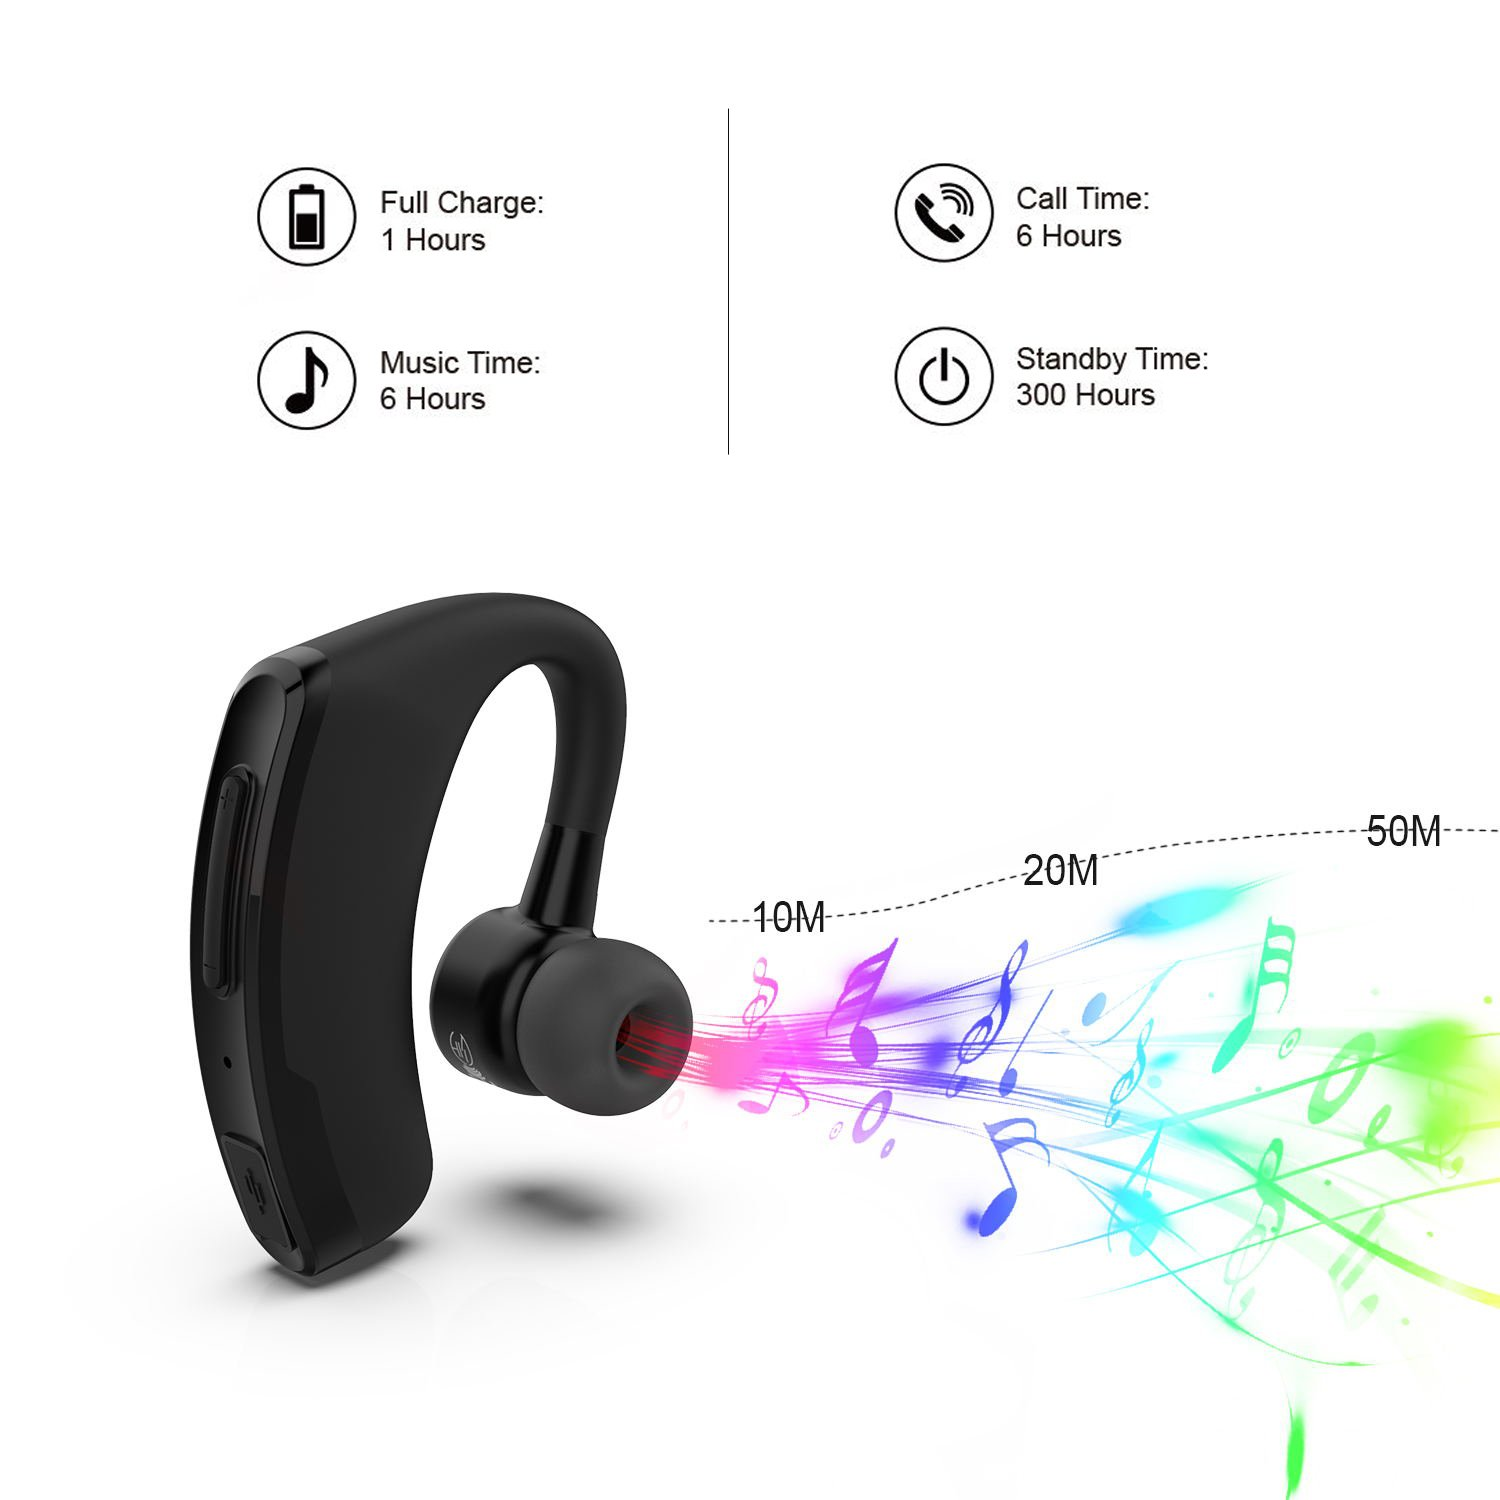 220c3d96684 Bluetooth headset, IAVCC Wireless Bluetooth Earpiece Hands-free Earset, 50m/164  ft Connect Distance, 300h Standby Time, In-Ear Earbuds with Noise  Cancelling ...